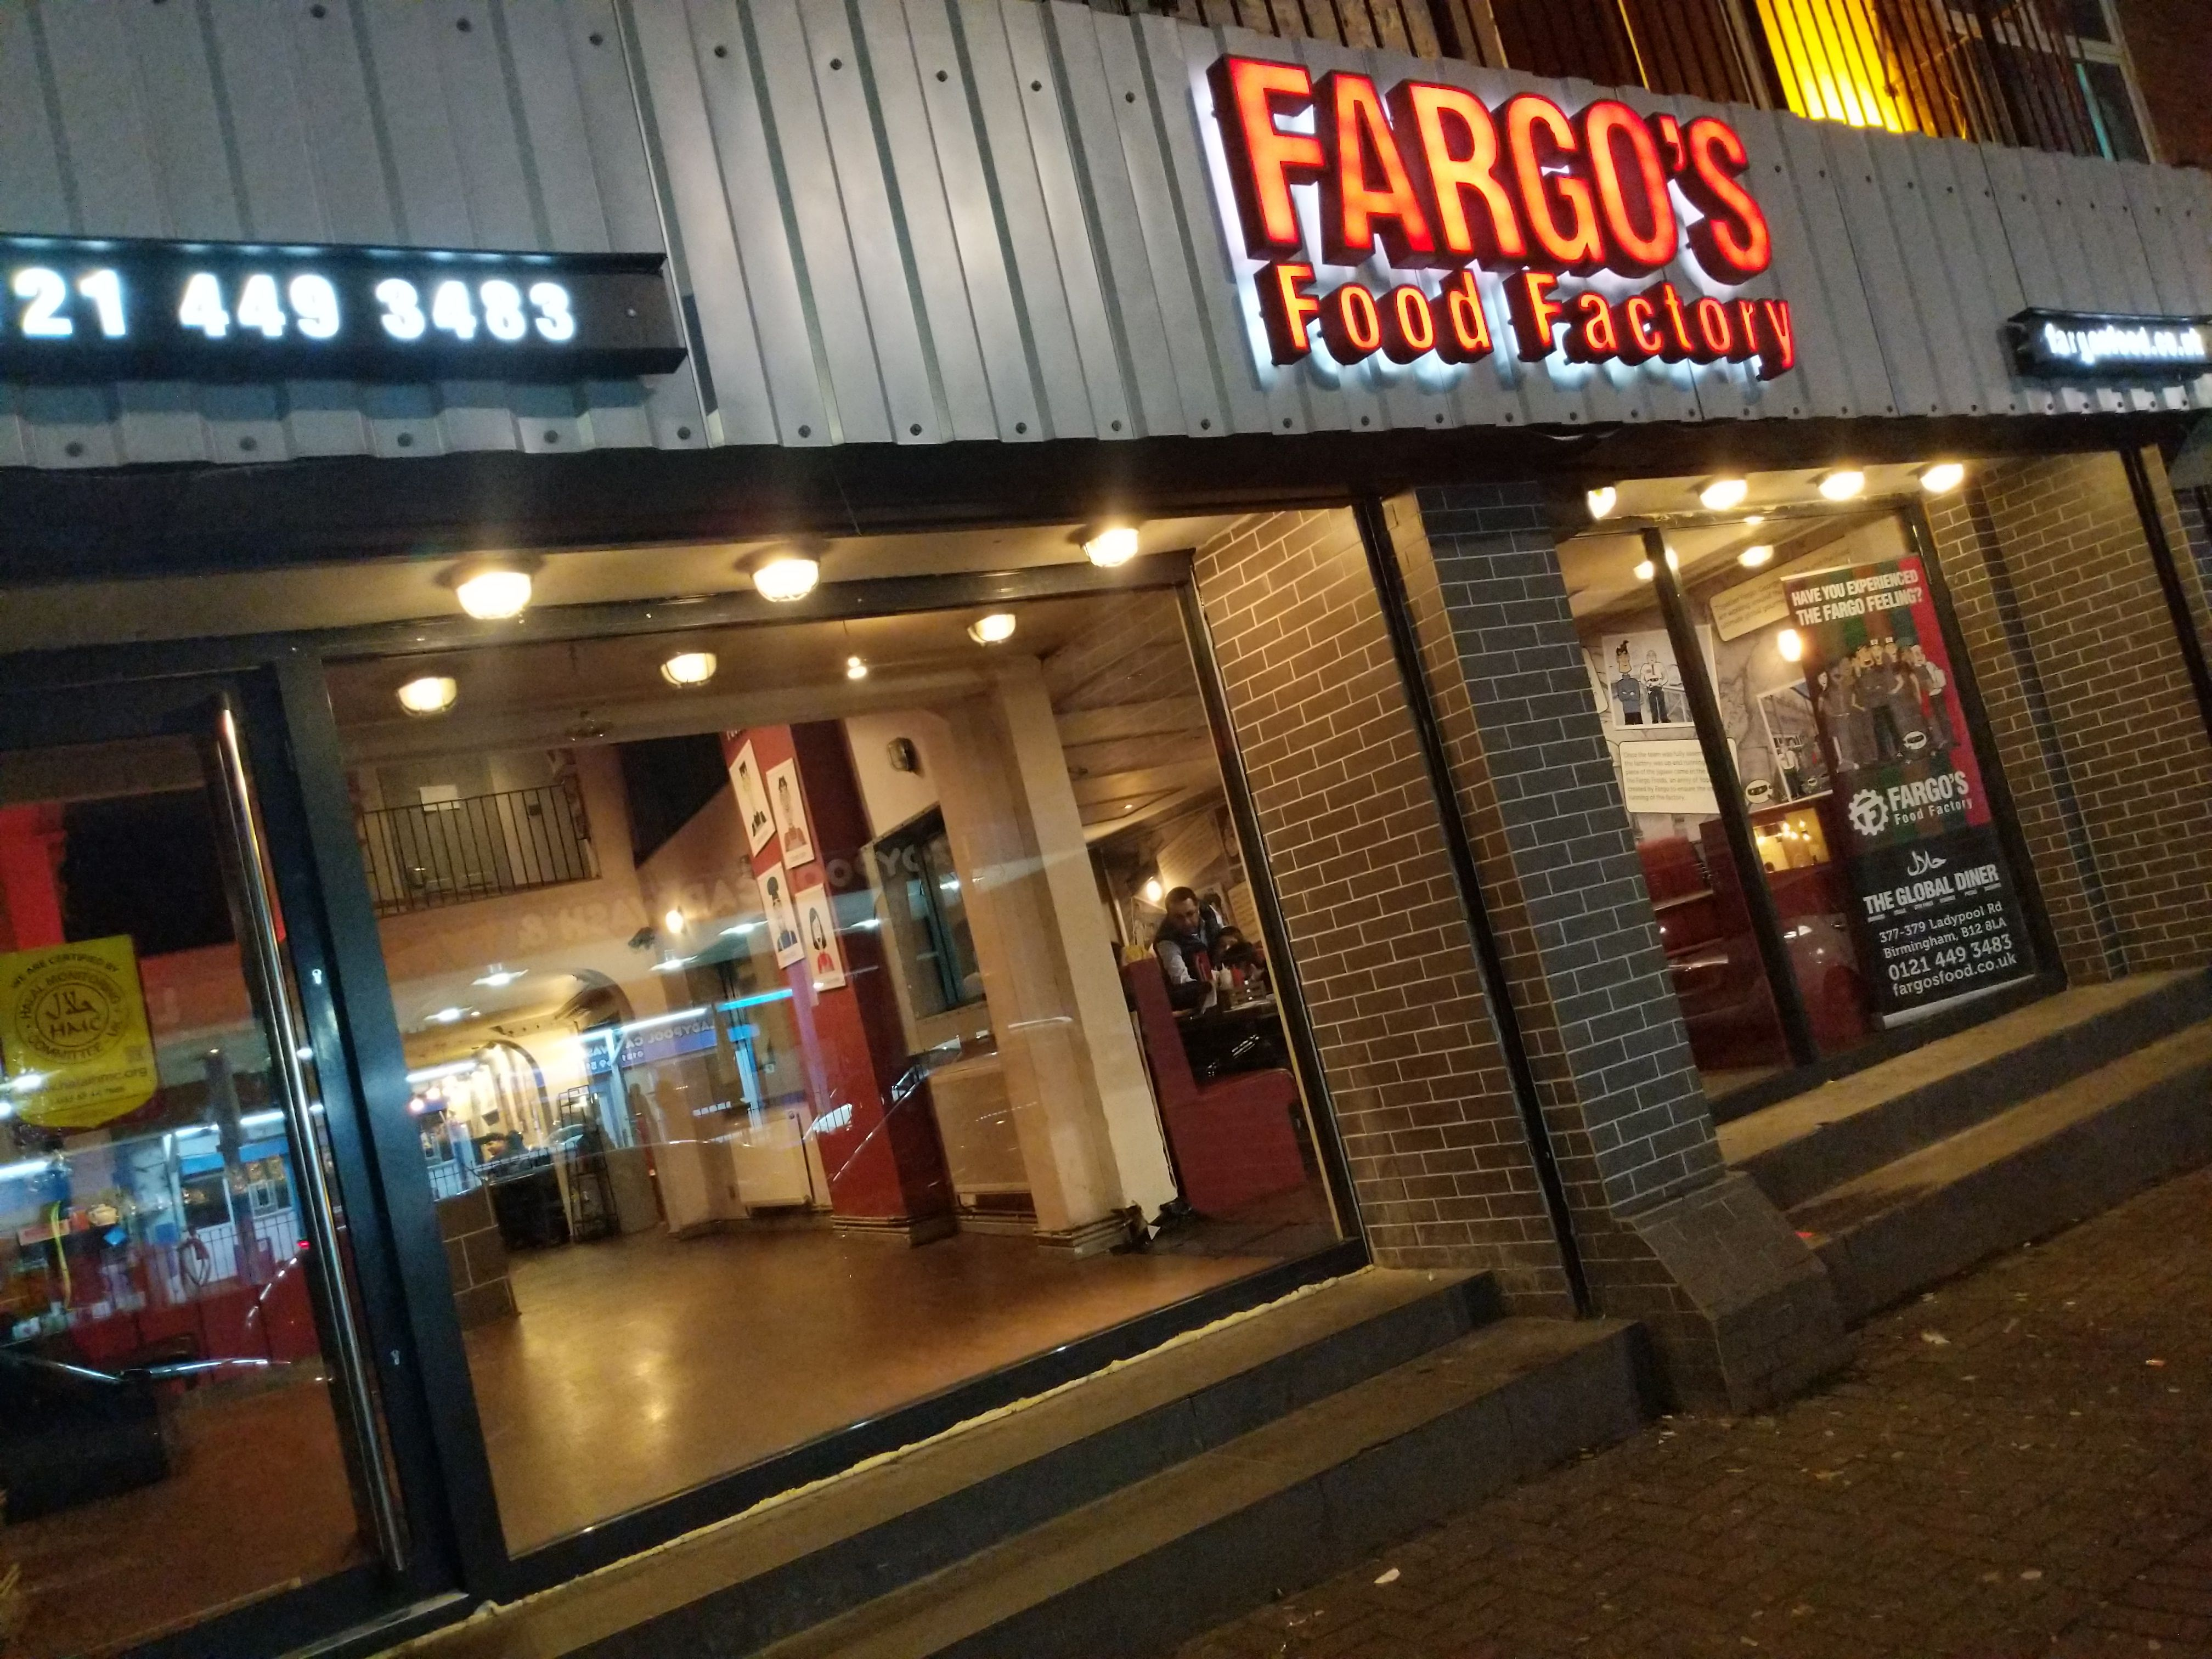 Fargo S Food Factory Birmingham Review Halal Tapas Menu With A Range Of Burgers Steaks Burritos Pizza More Tapas Menu Halal Recipes Pizza And More